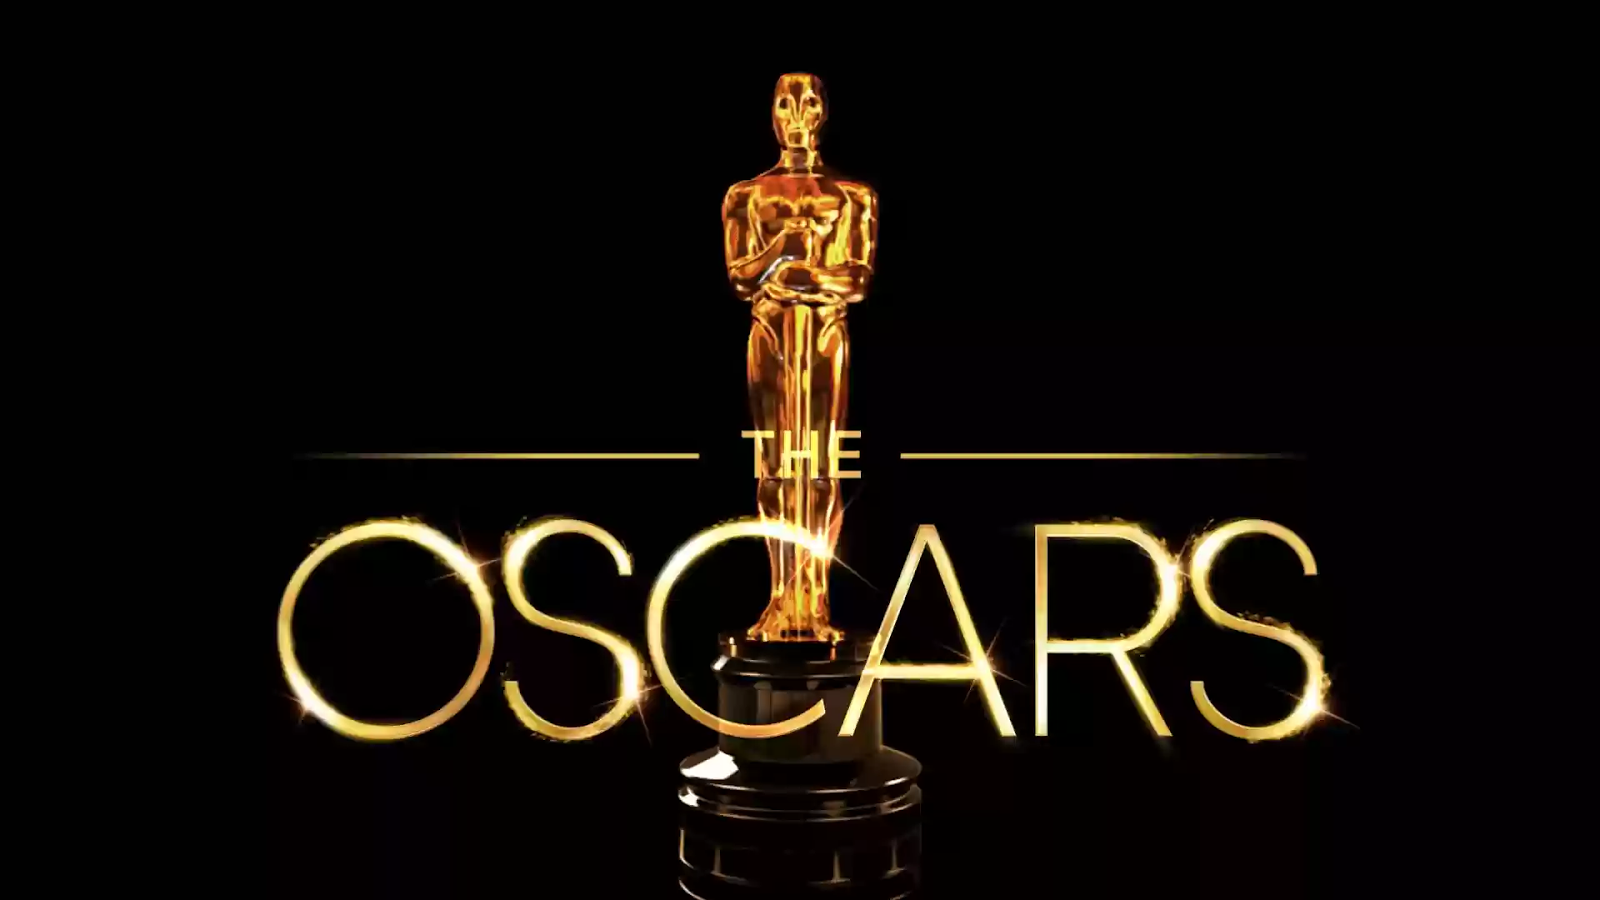 The Oscars 2017 - 89th Academy Awards Watch Online Full Show Video - Official Website - BenjaminMadeira